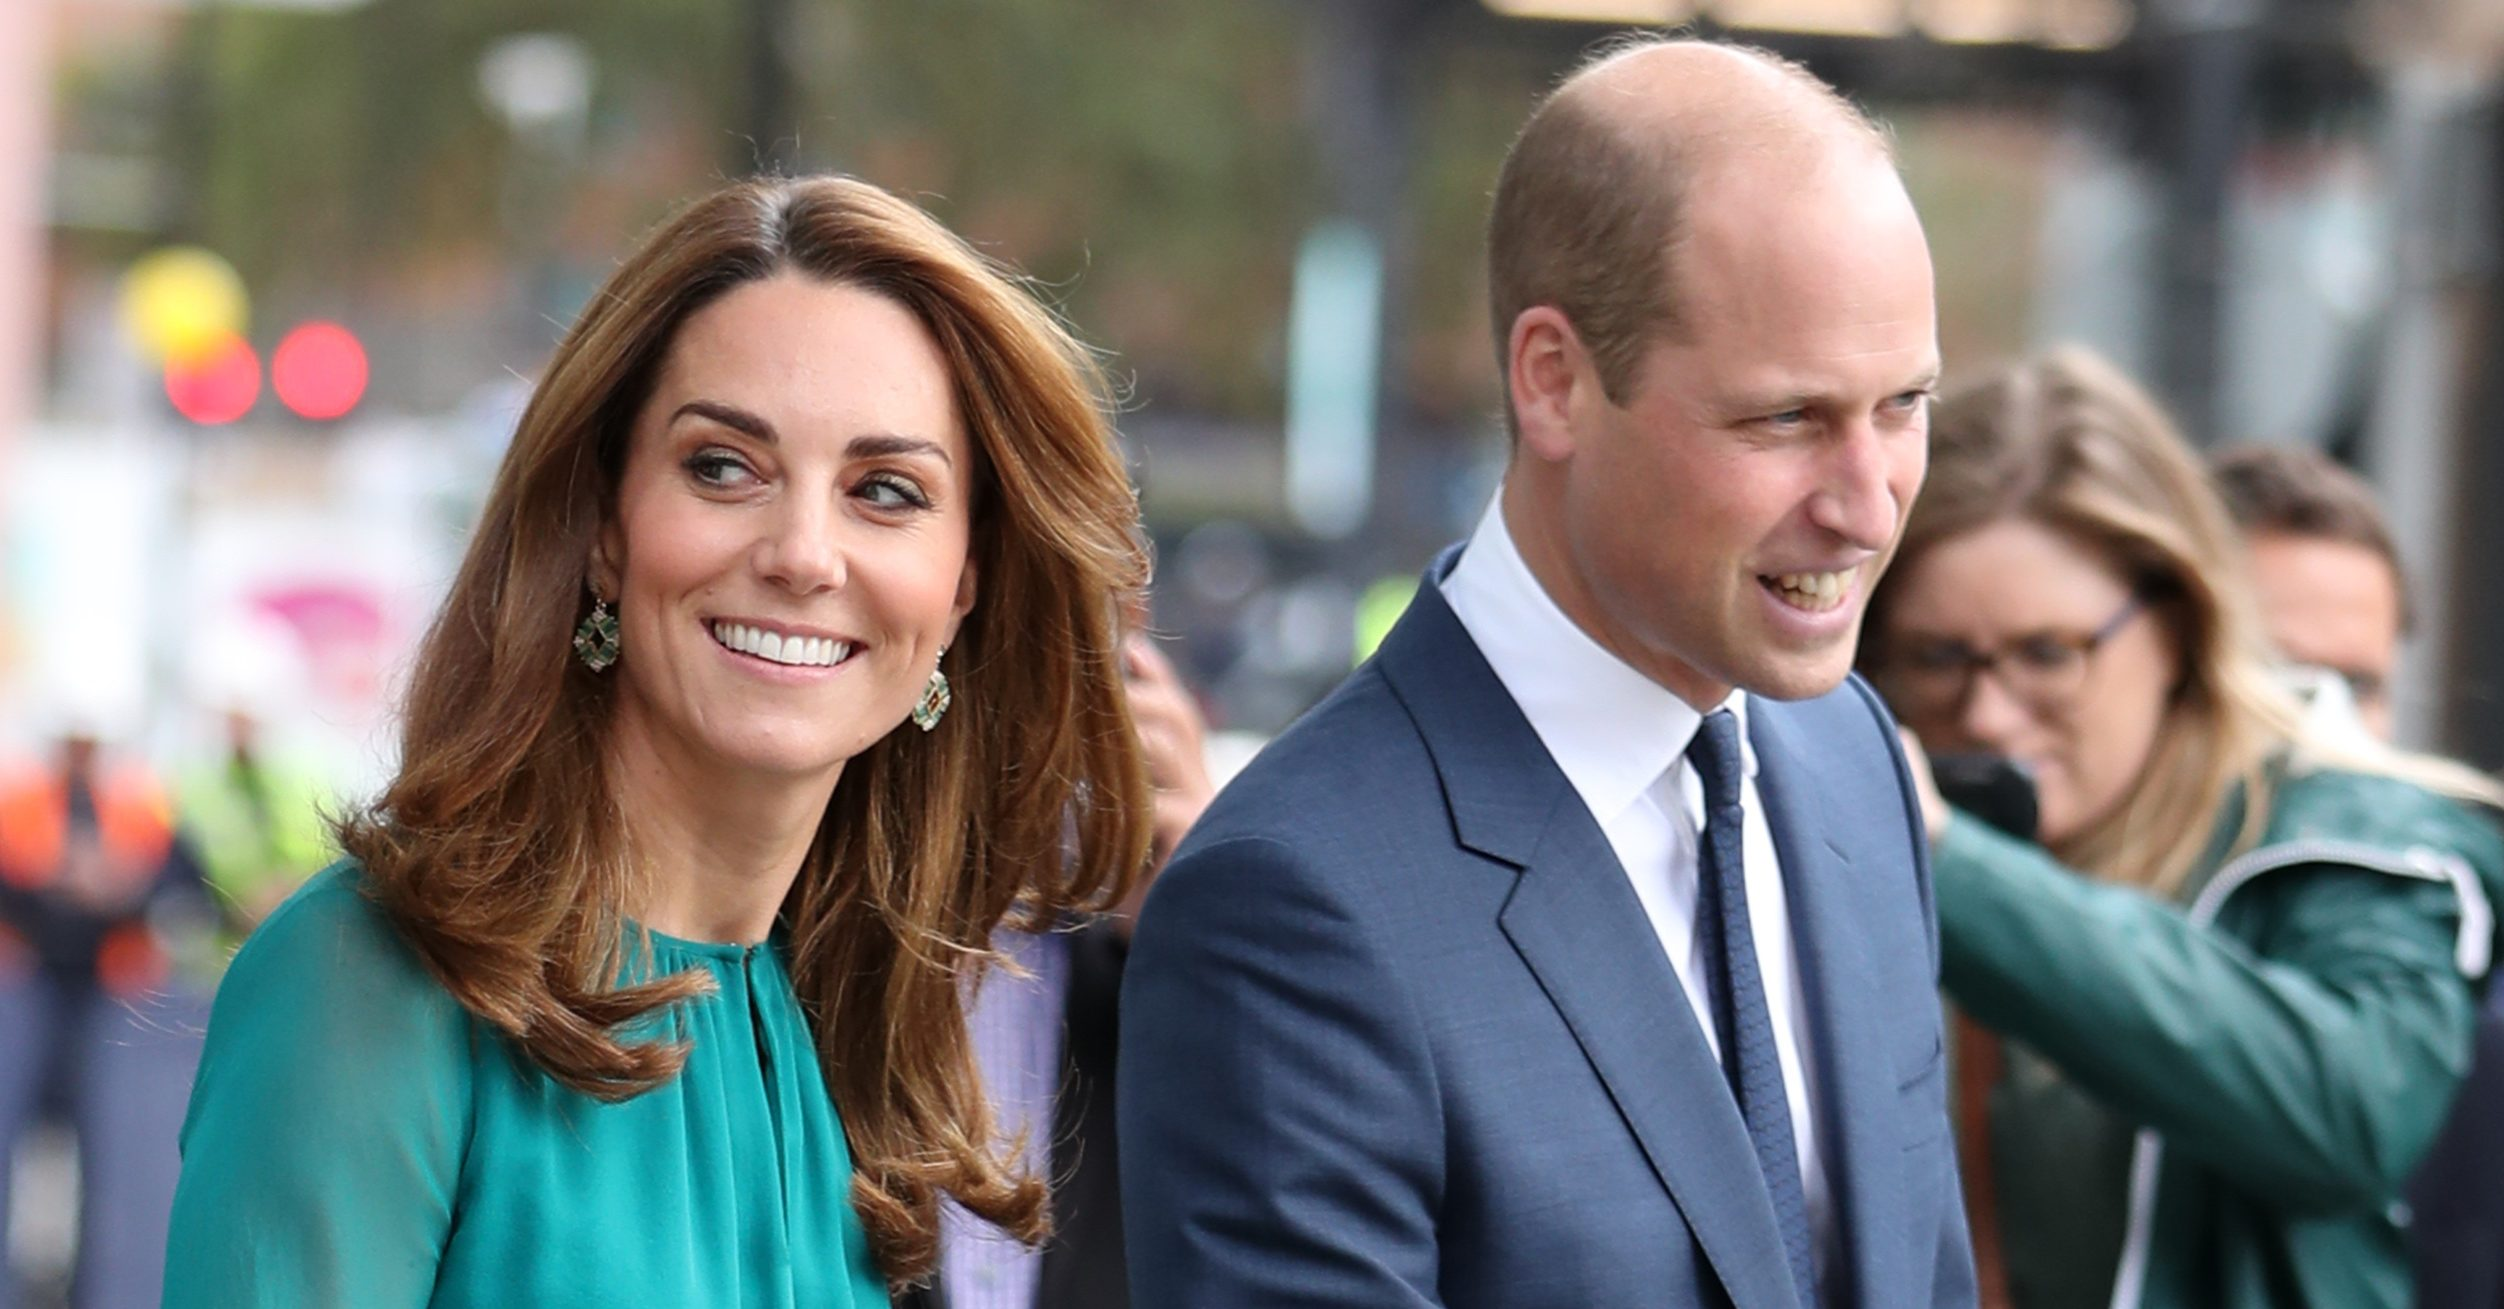 Will and Kate spice things up ahead of royal tour as the duchess reveals she likes it 'hot'